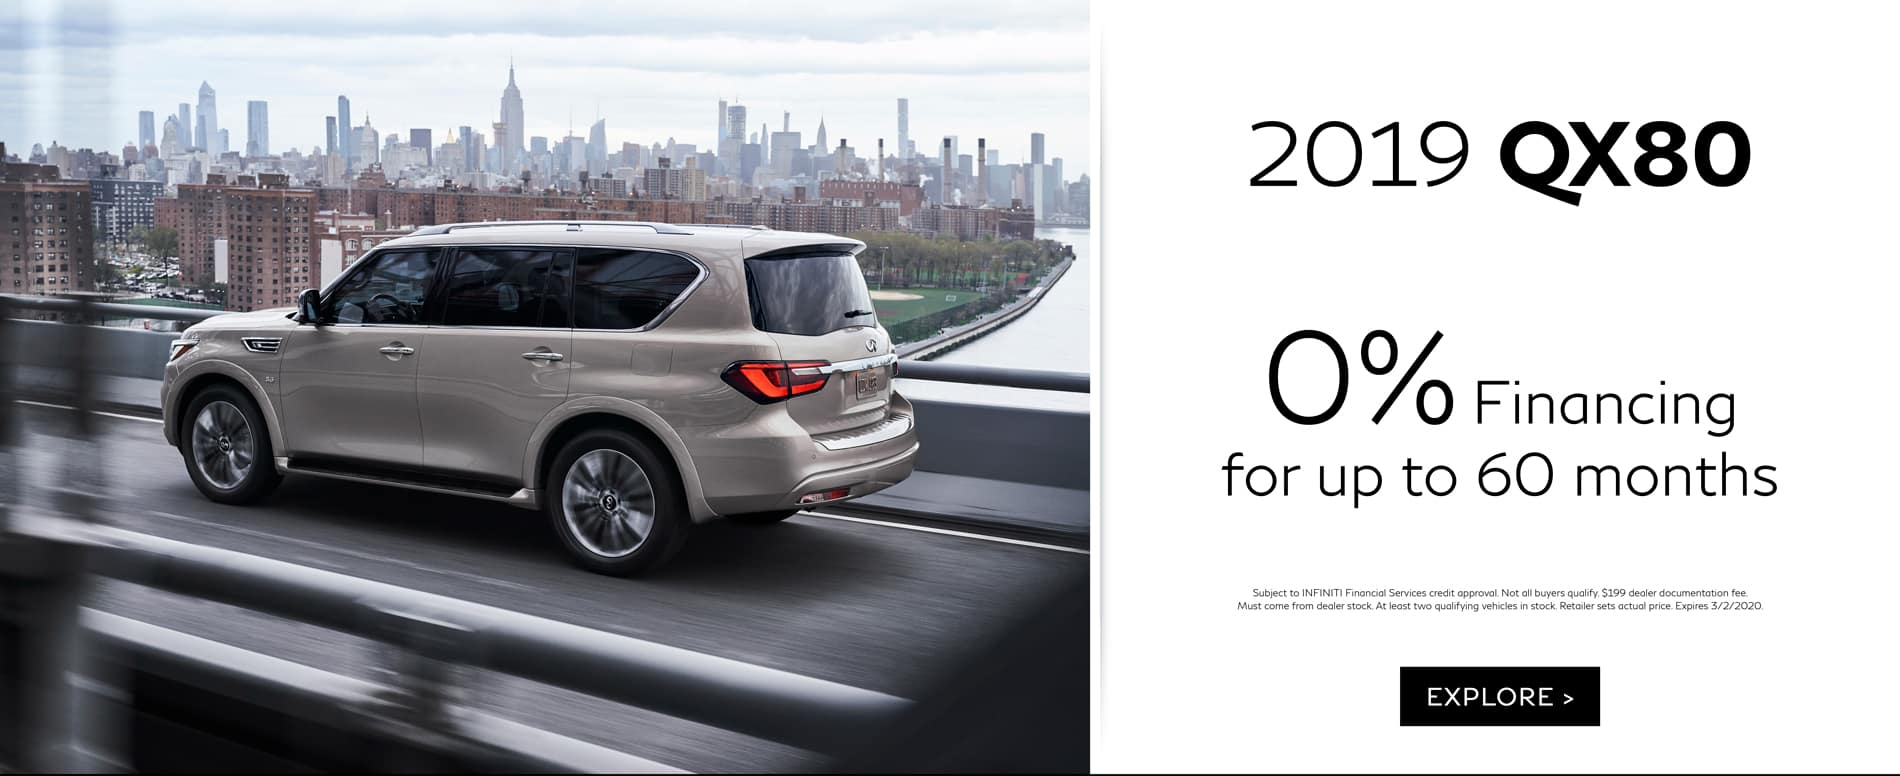 February QX80 APR Offer 0% for up to 60 months